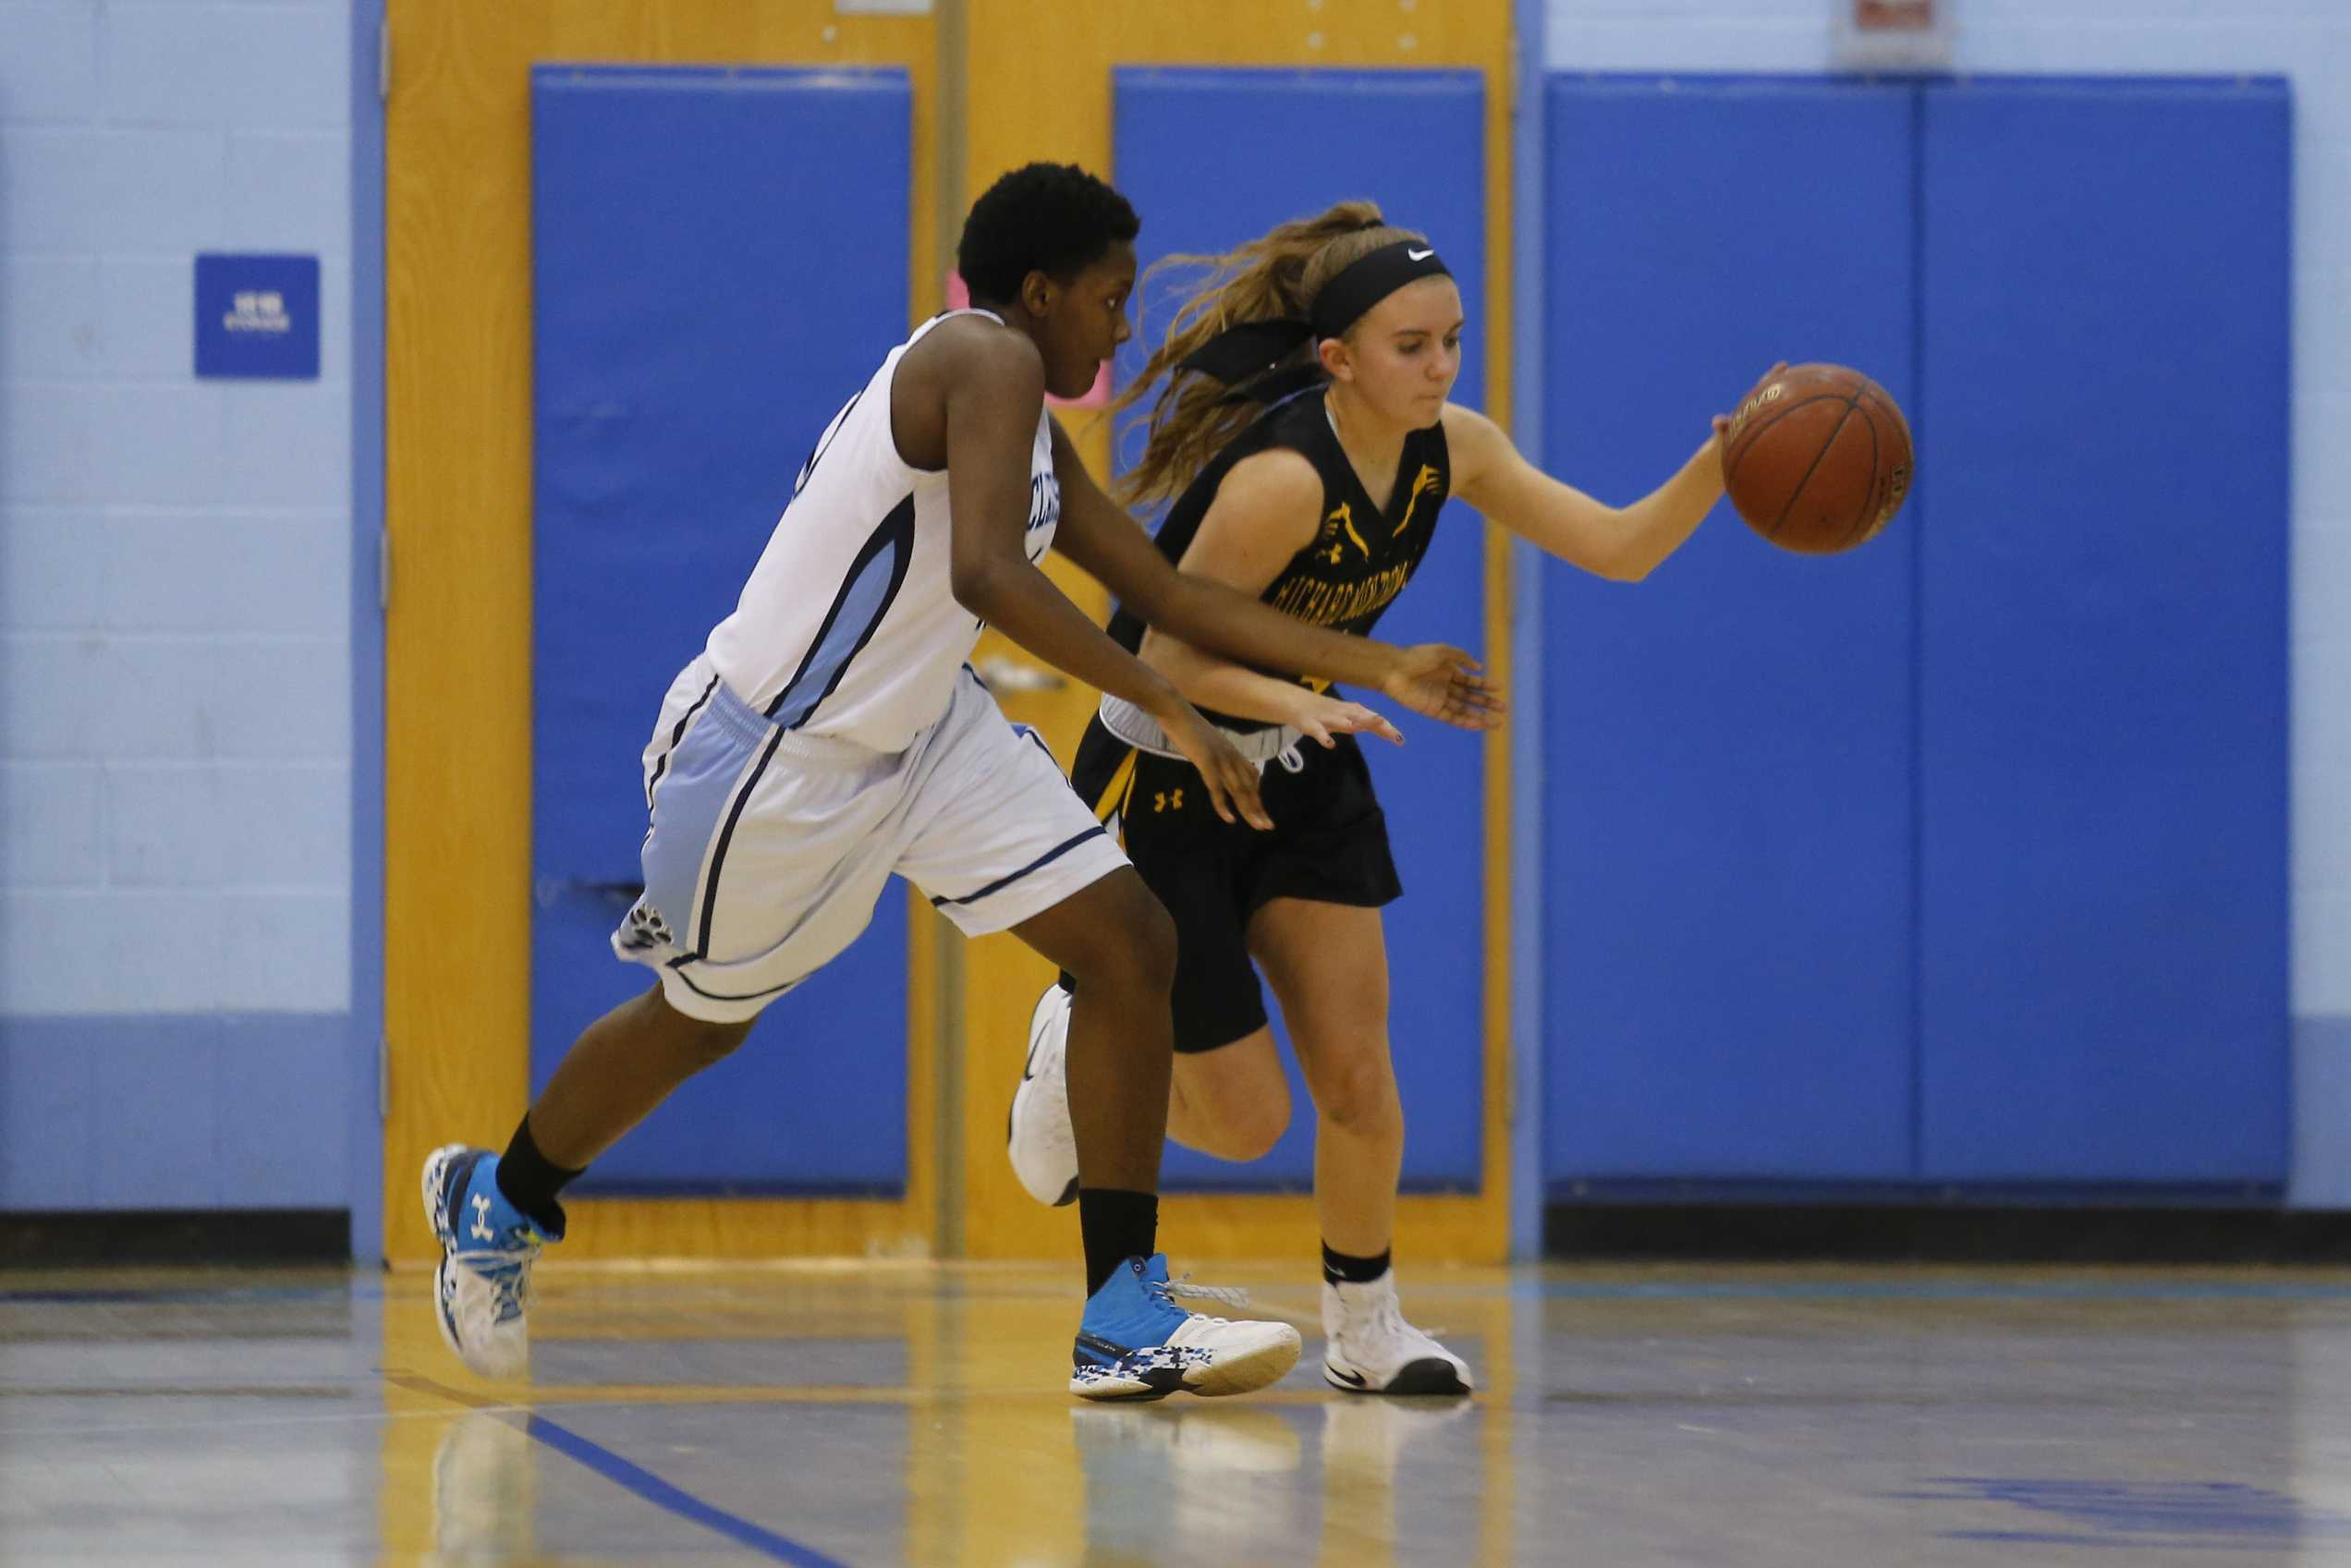 Girls basketball continues undefeated streak with 70-52 win over Gaithersburg